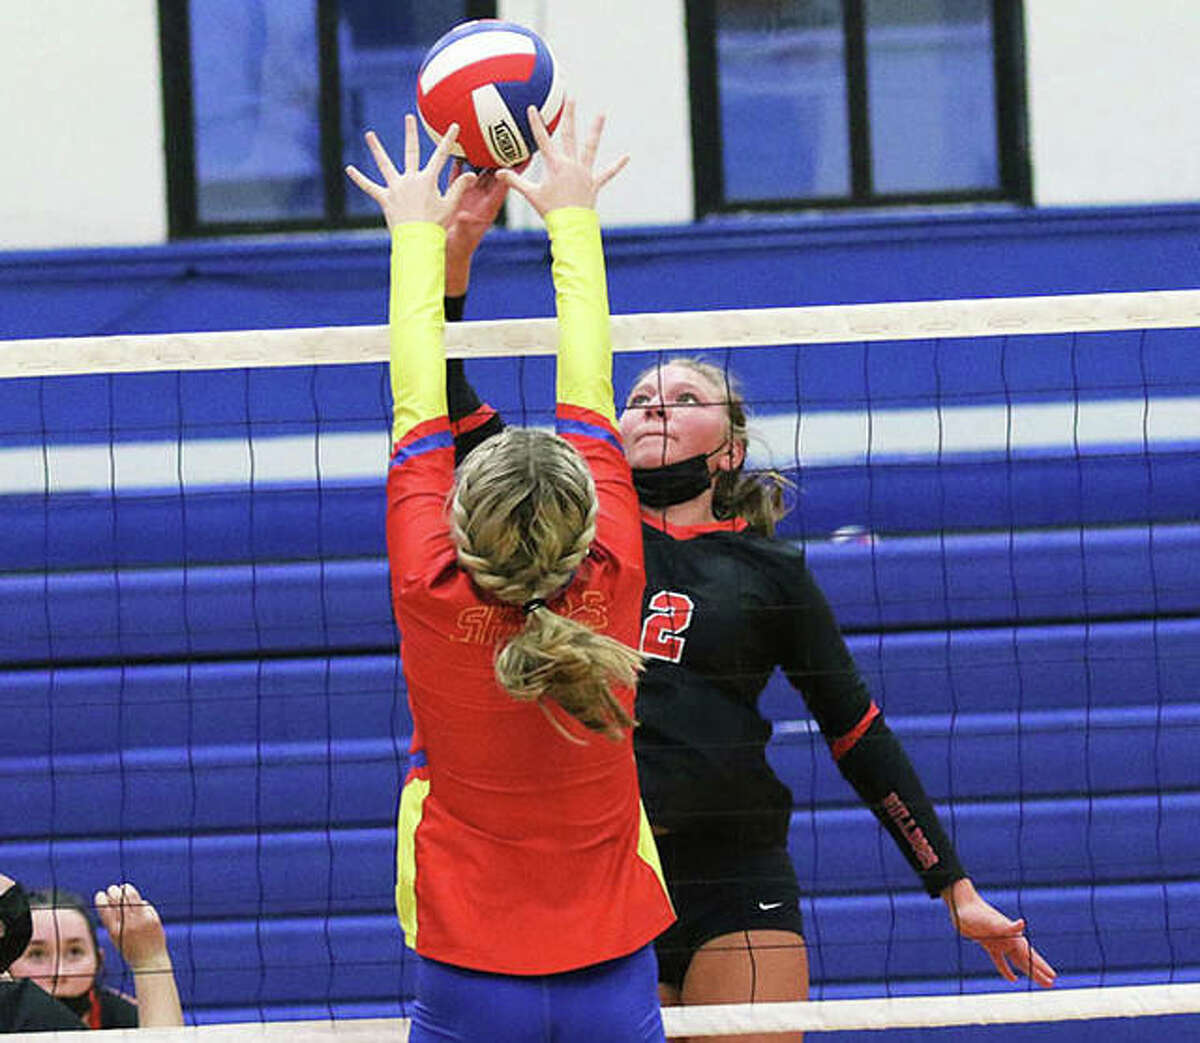 Staunton senior Taryn Russell (2) tips over the block of Roxana's Peyton Petit during a SCC girls volleyball match March 22 at Milazzo Gym in Roxana. Russell had a career-high 14 kills in the Bulldogs' win.